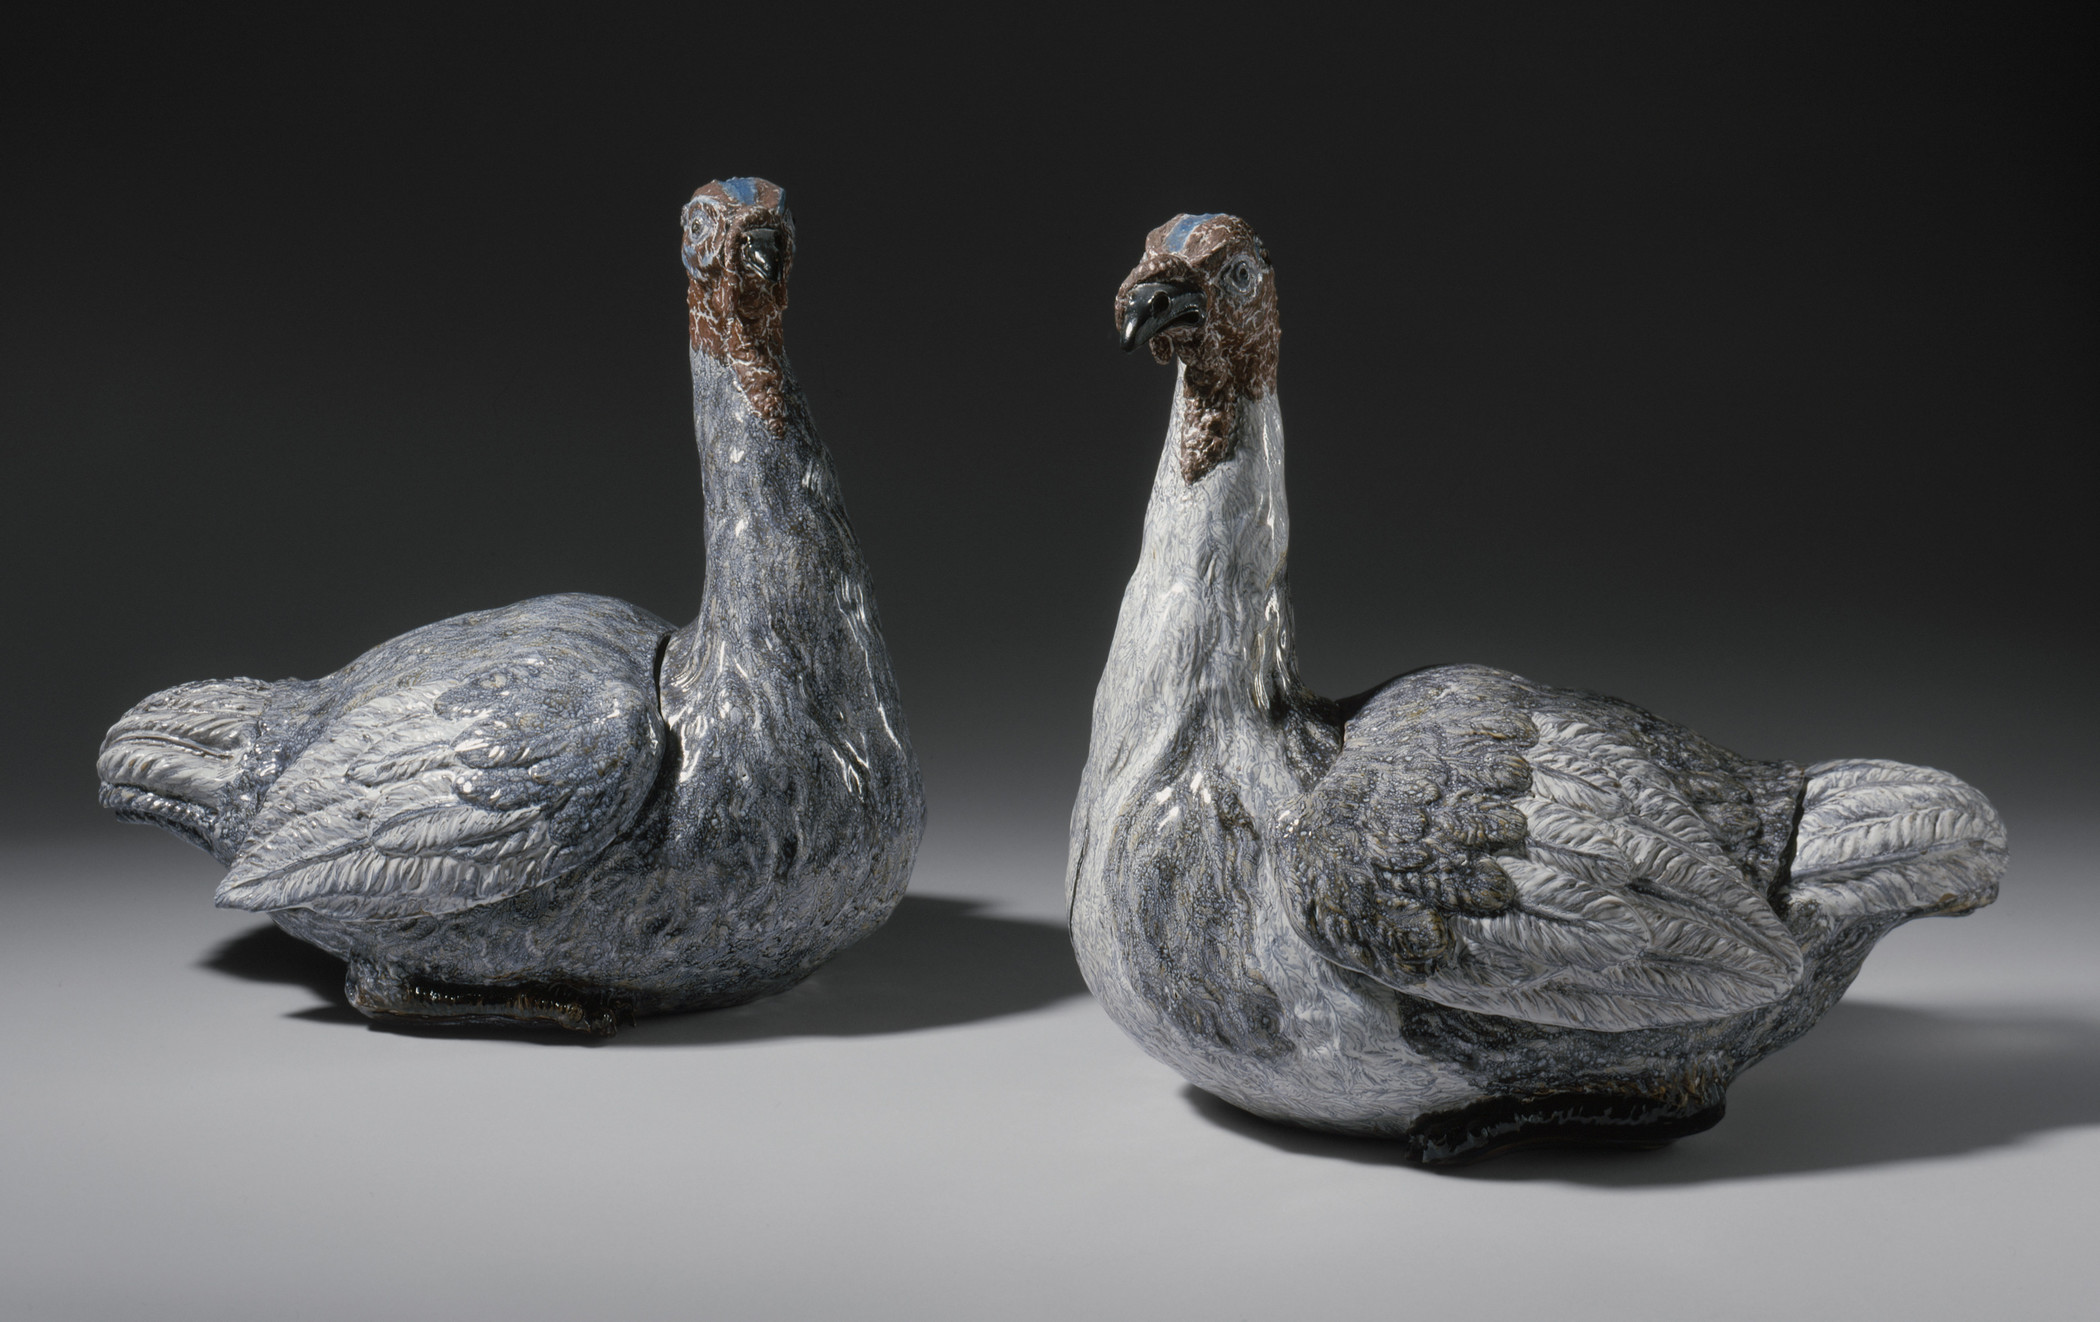 Pair of Turkey Tureens, Hungary, Holitsch, 1743–86, Los Angeles County Museum of Art, purchased with Denis Bequest funds for the Colonel and Mrs. George J. Denis Collection, photo © Museum Associates/LACMA